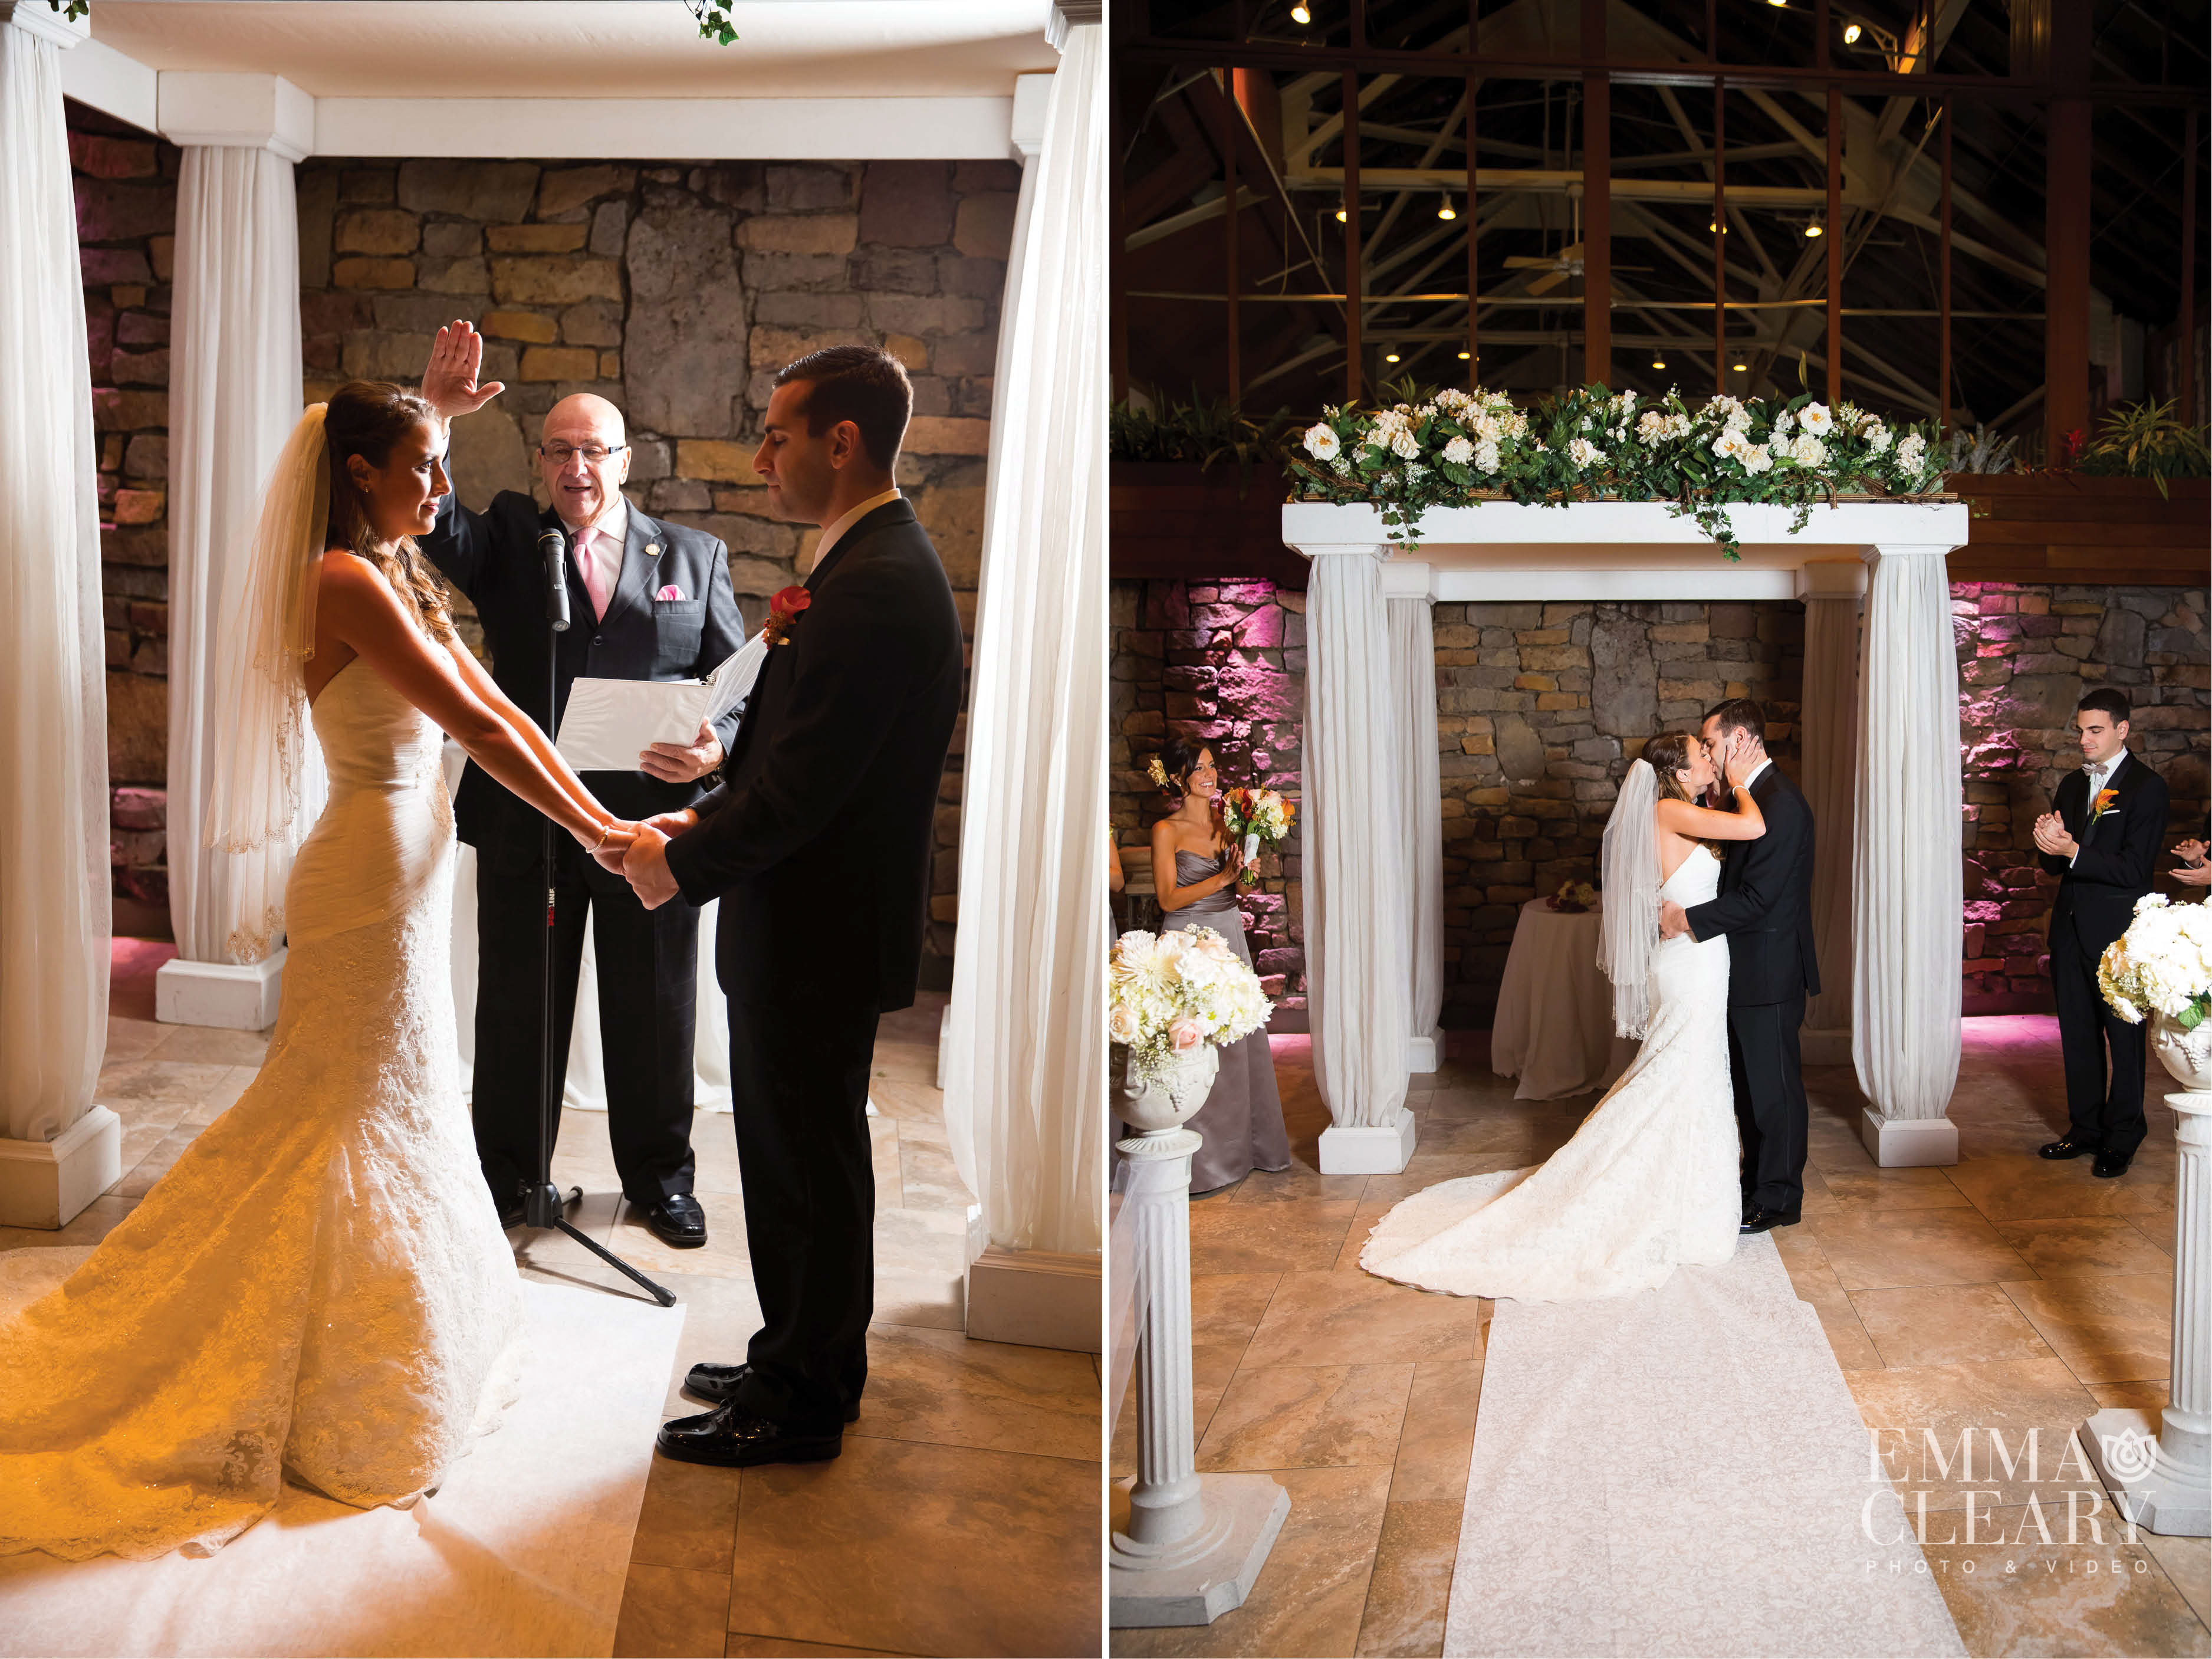 emma_cleary_photography-fox-hollow-wedding-photography8